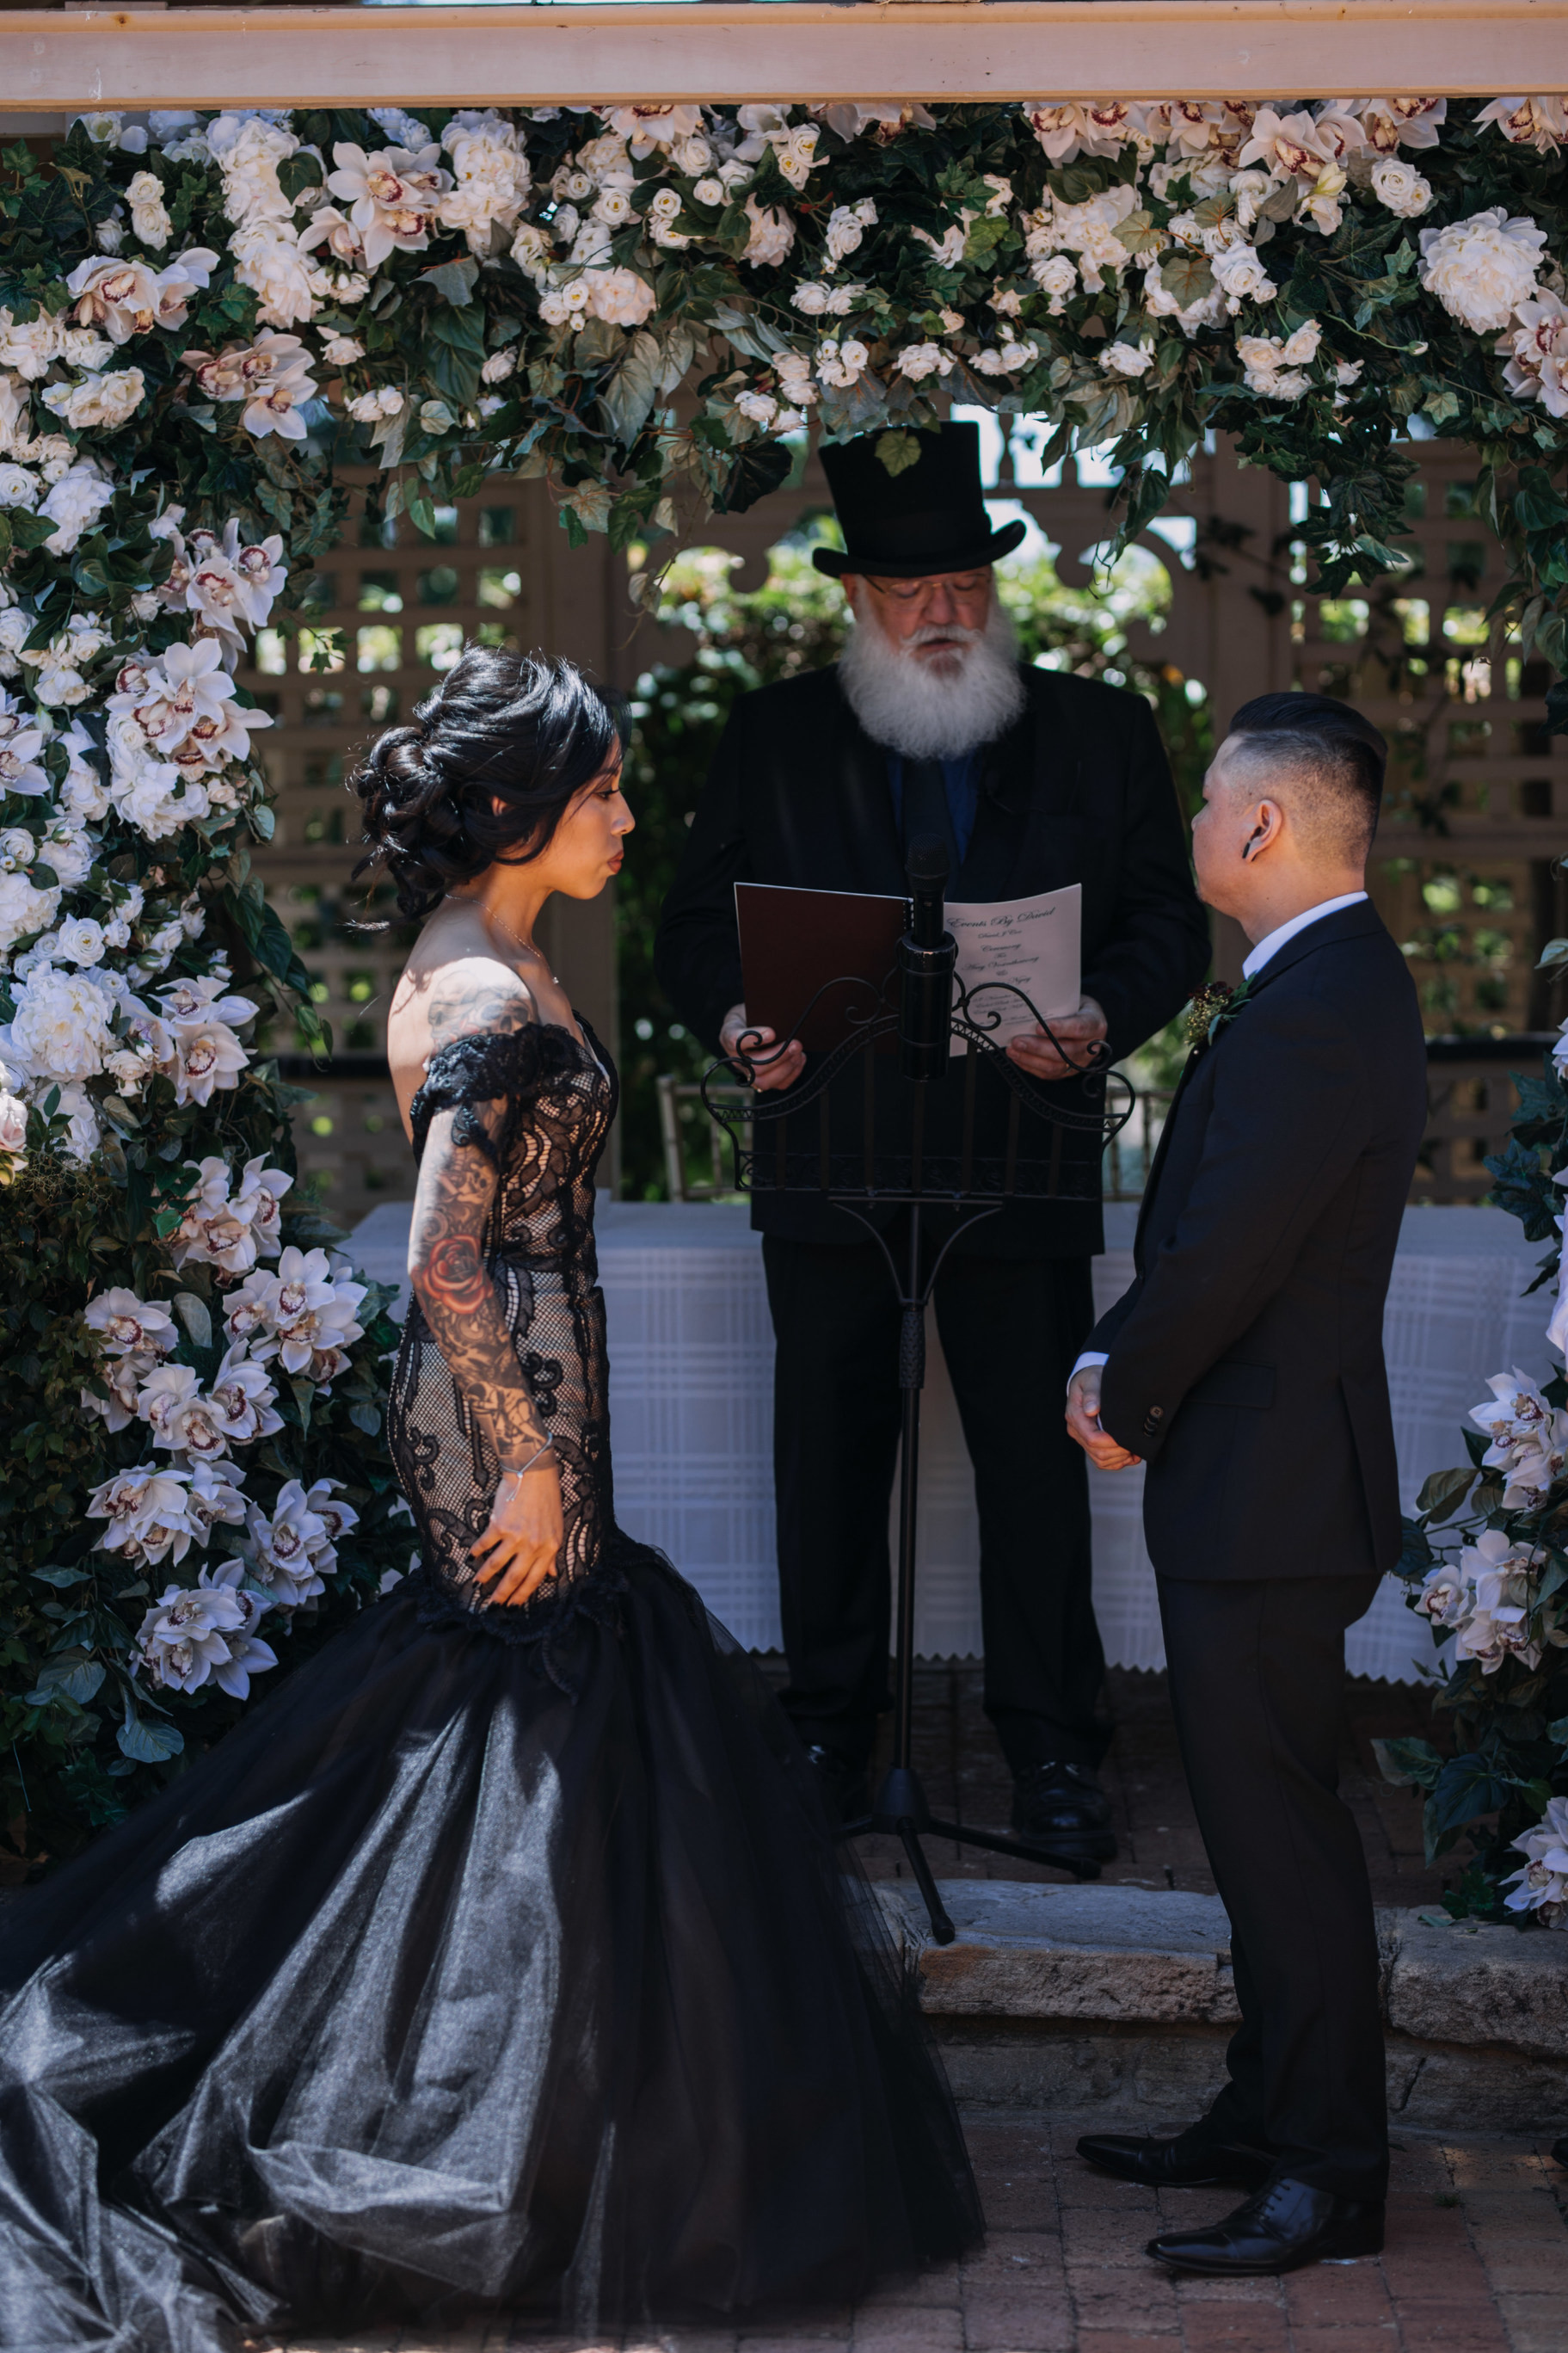 goth wedding, gothic wedding, black wedding dress, real wedding, unique wedding,